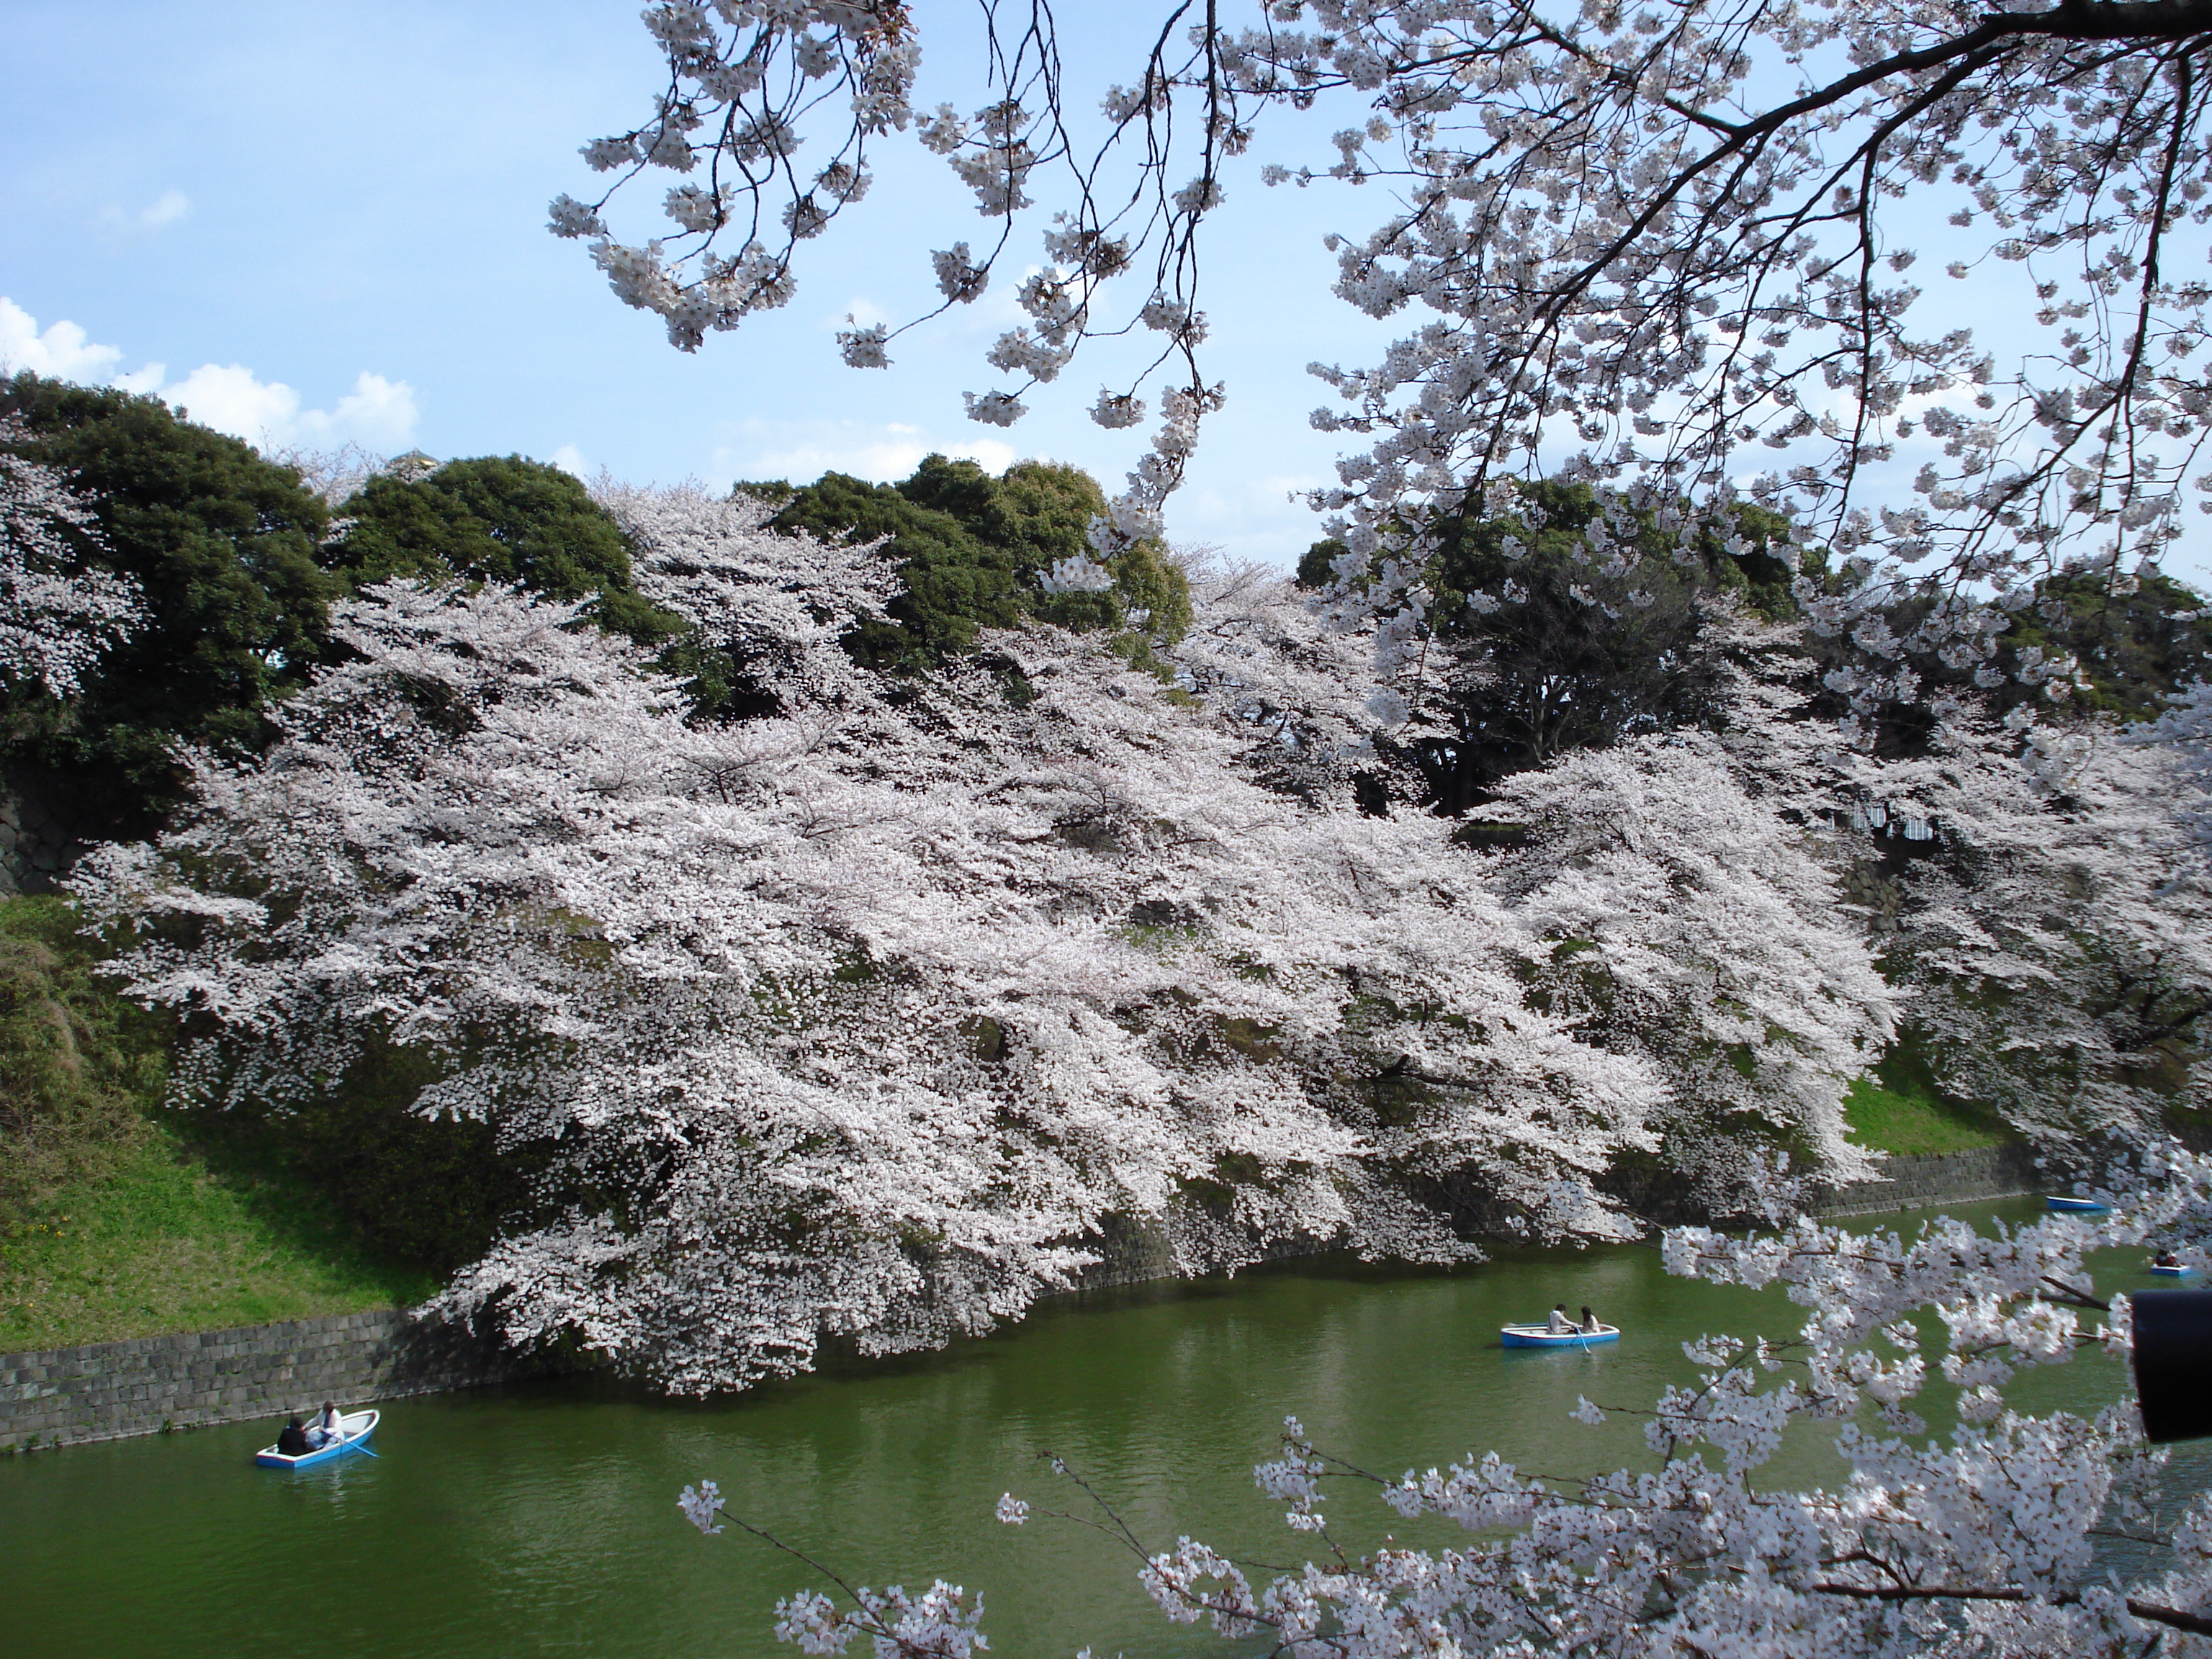 https://upload.wikimedia.org/wikipedia/commons/f/f9/Chidorigafuchi_sakura.JPG